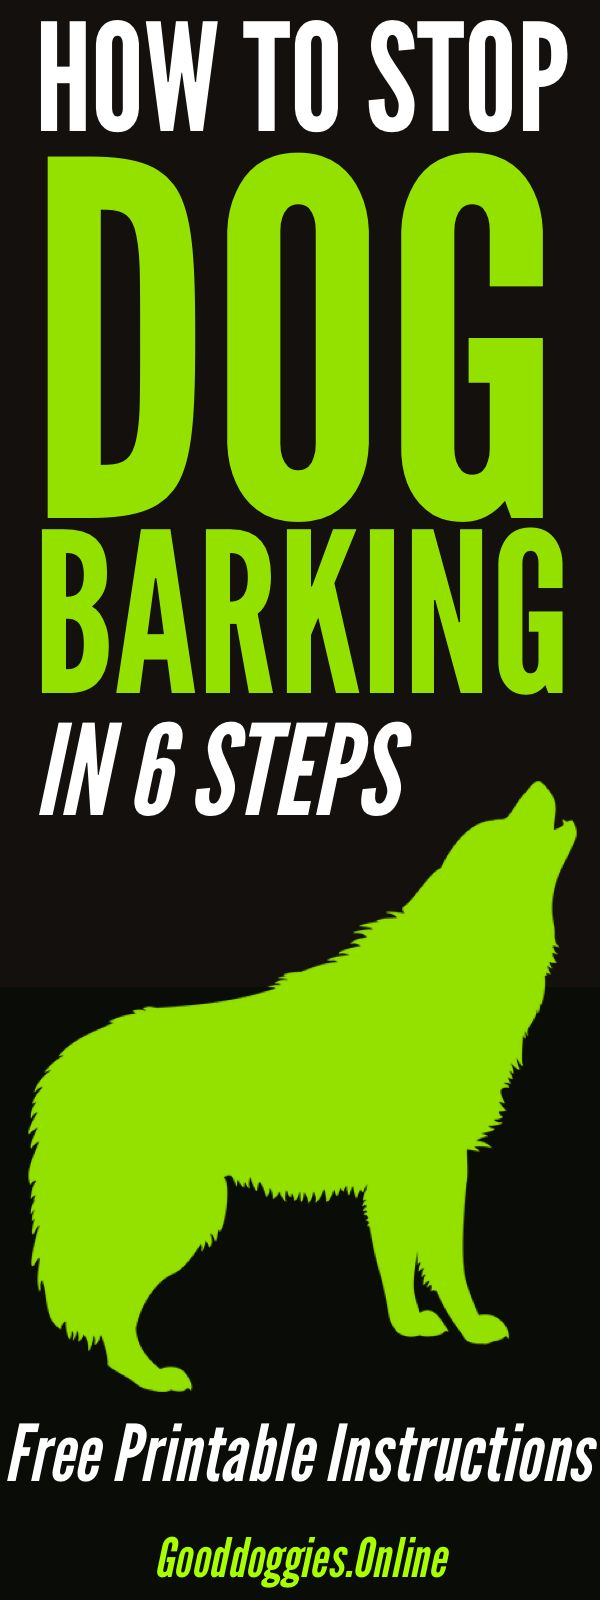 Learn how to stop dog barking in 6 easy steps. Includes tips on free printable download. #dogs #barking #dogtraining